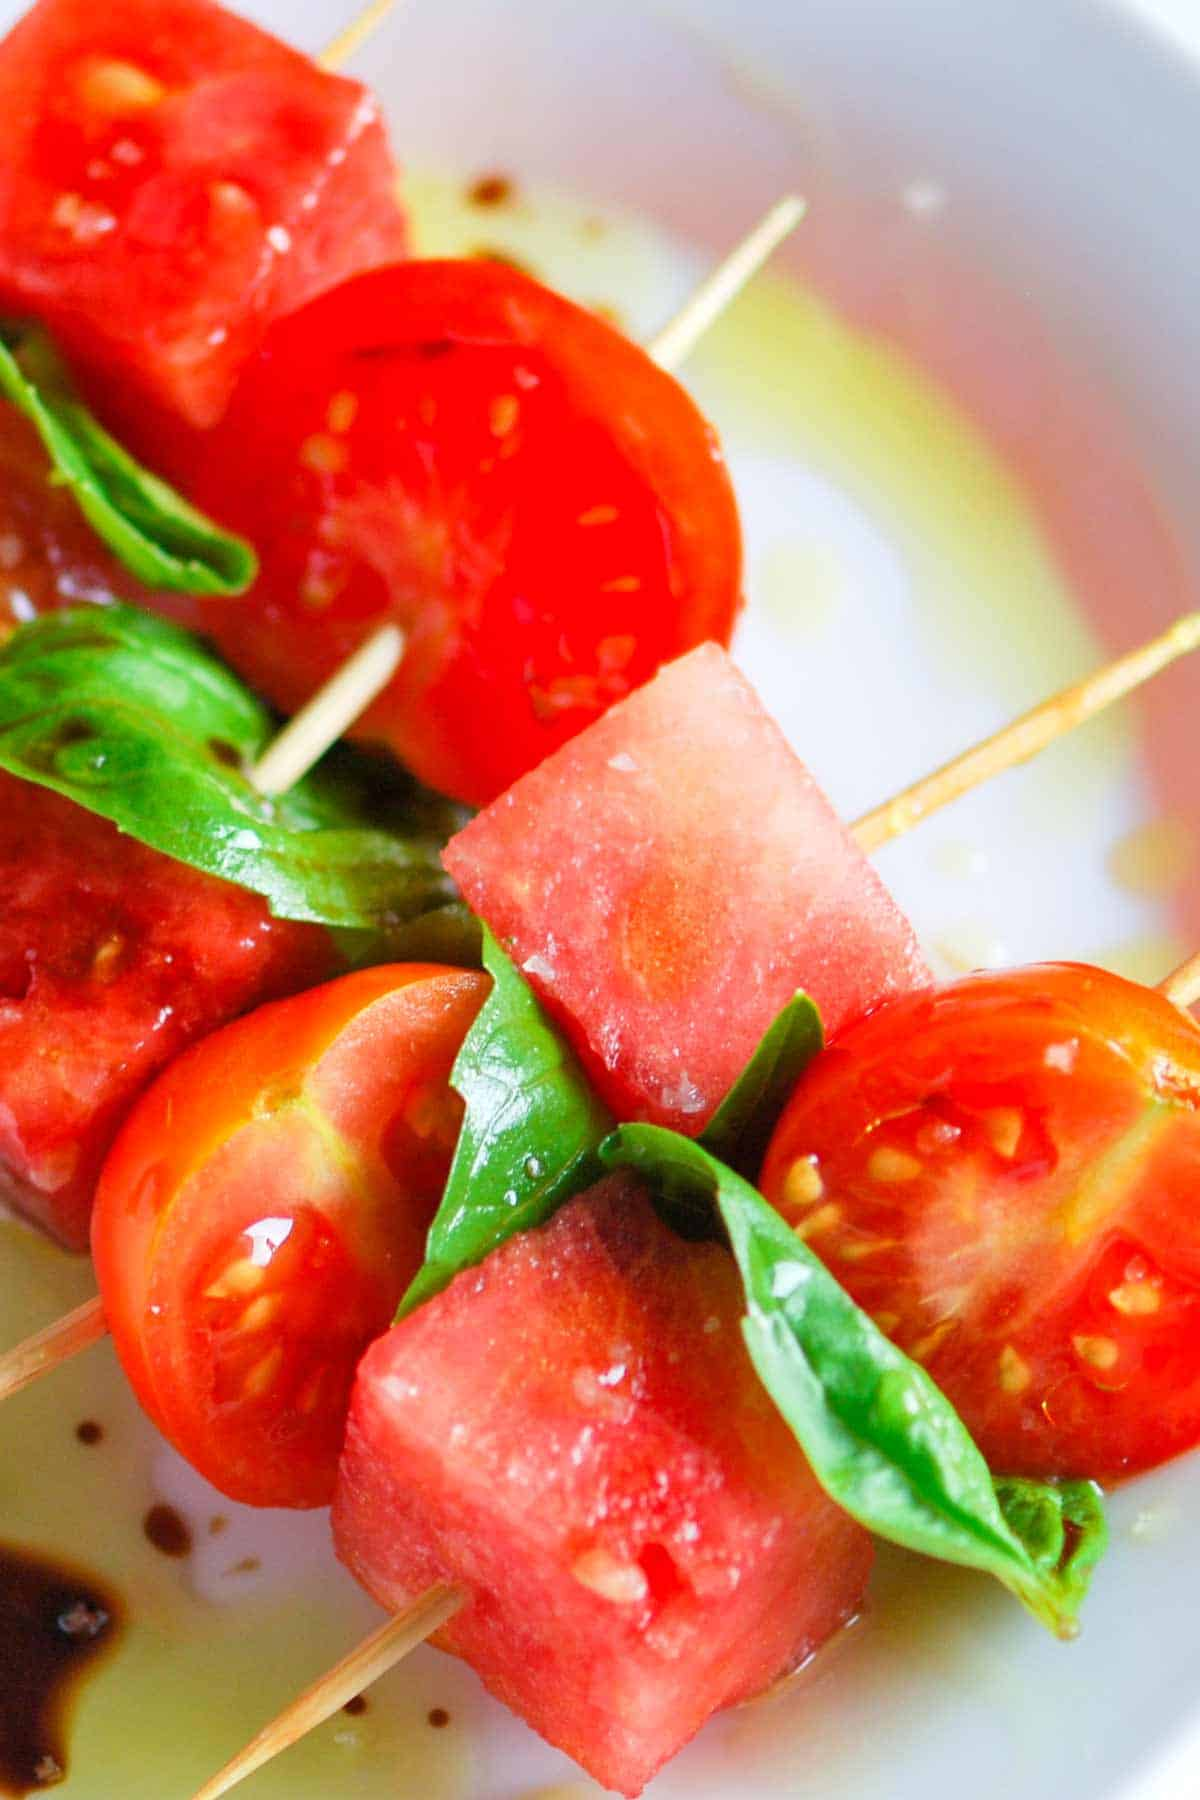 Easy Appetizer Recipe with Watermelon, Tomato and Basil